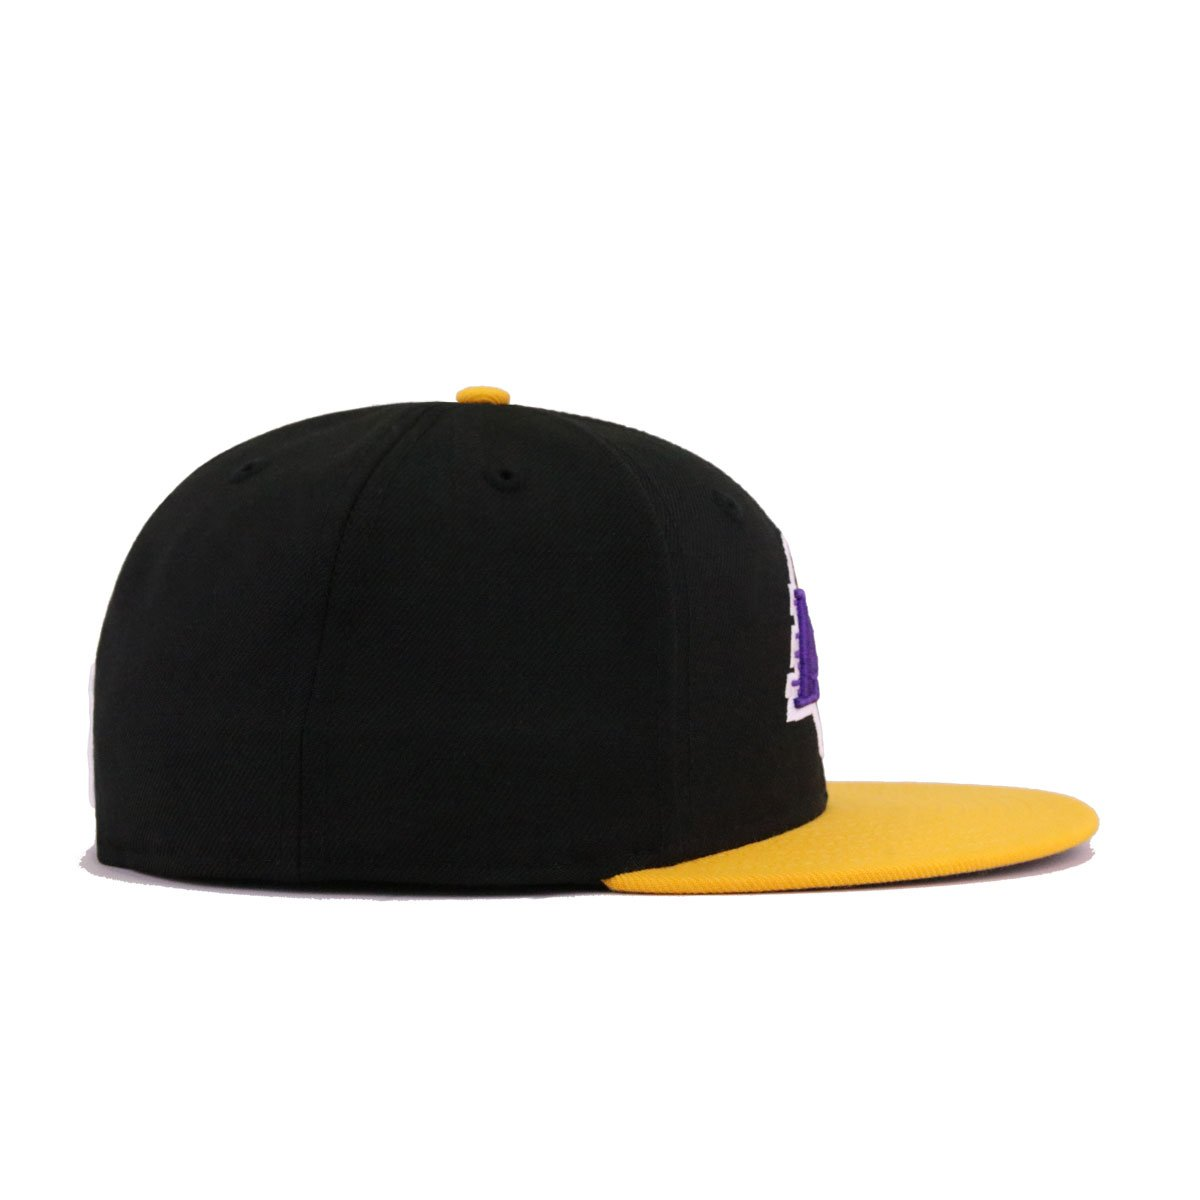 Los Angeles Lakers Black A's Gold New Era 59Fifty Fitted